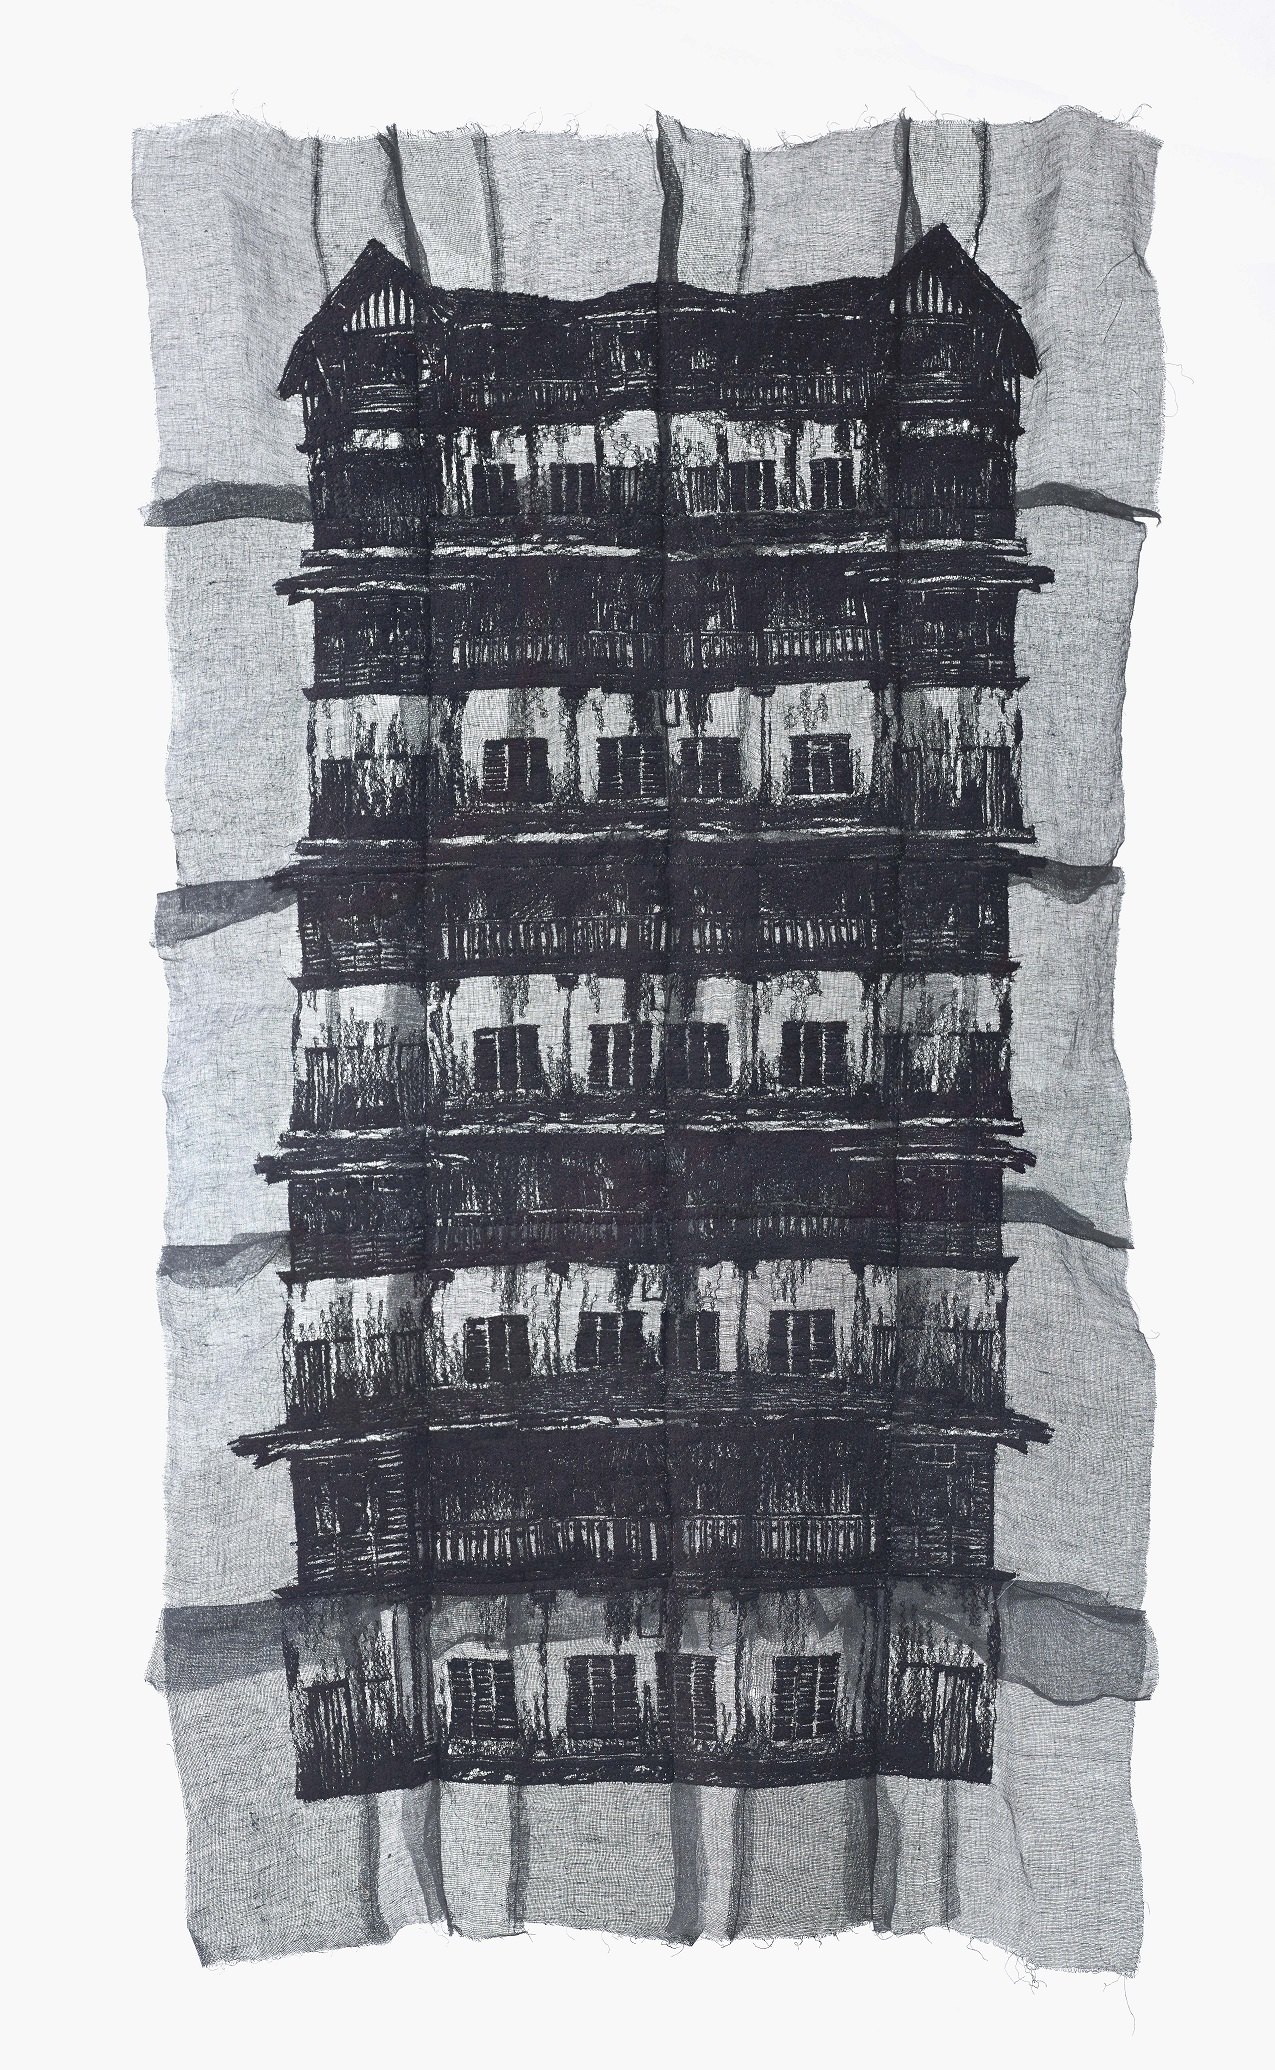 Yim Yen Sum - The Faded Memories (2017) Embroidery on gauze, gauze dyed in acrylic; 128cm(H) x 72cm(W)